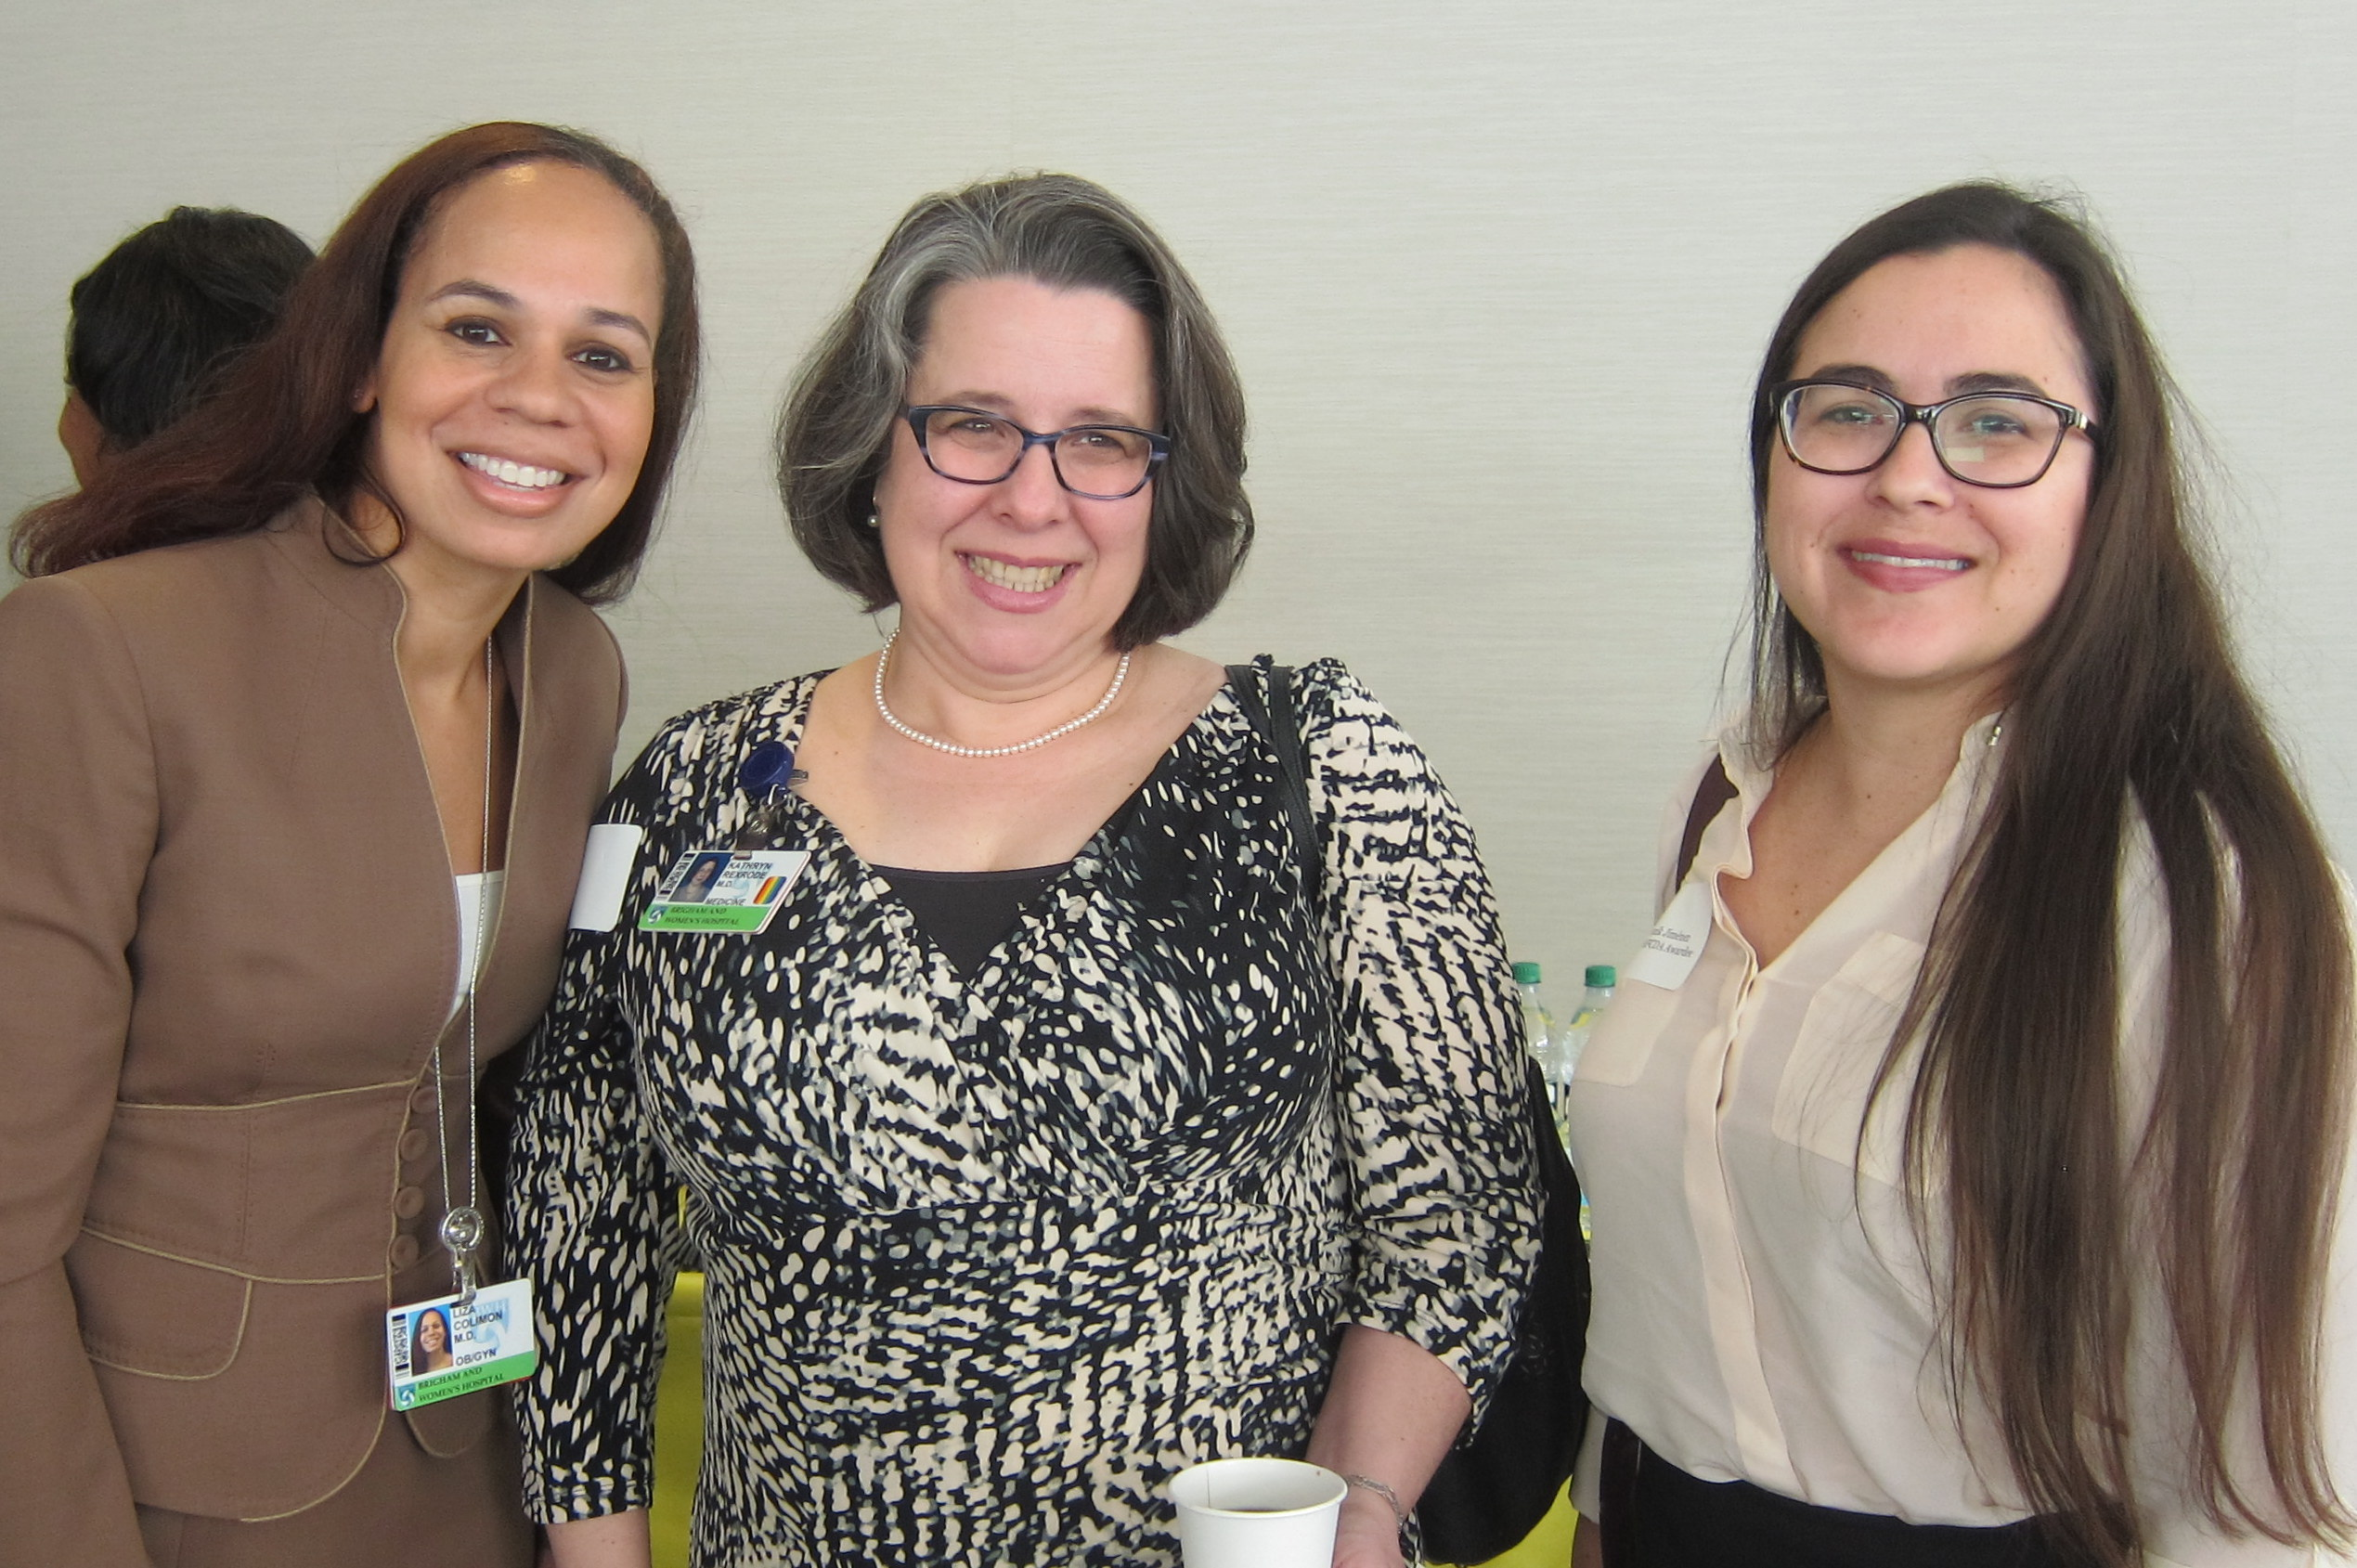 MFCDA recipients Liza Colimon (at left) and Monik Jimenez (at right) with Office for Women's Careers Faculty Director Kathryn Rexrode